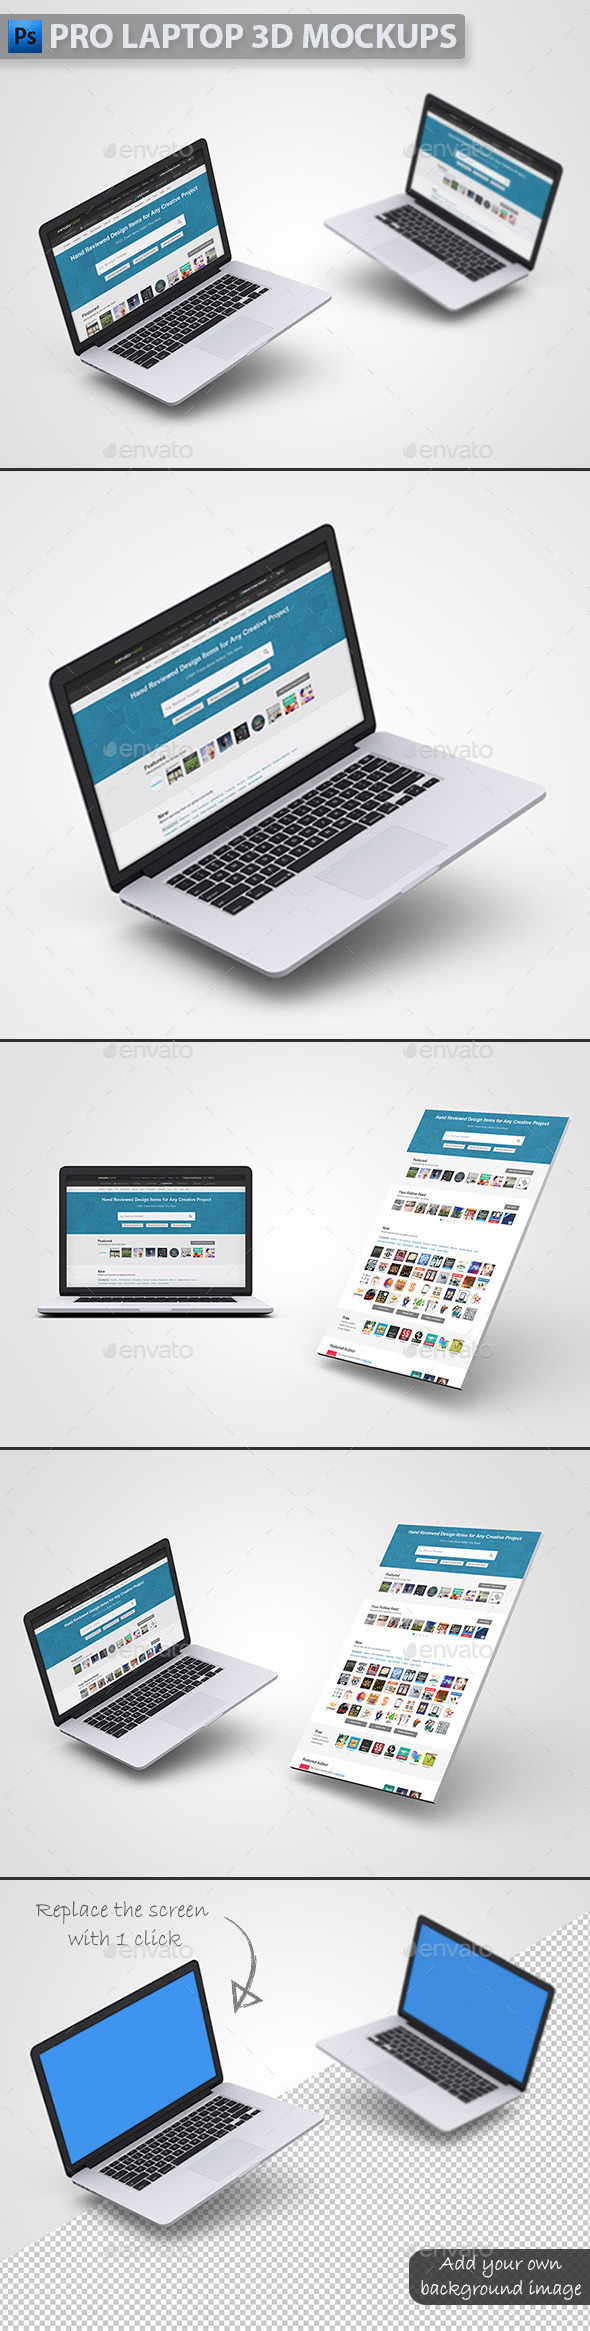 Pro Laptop 3D Mockups - Laptop Displays